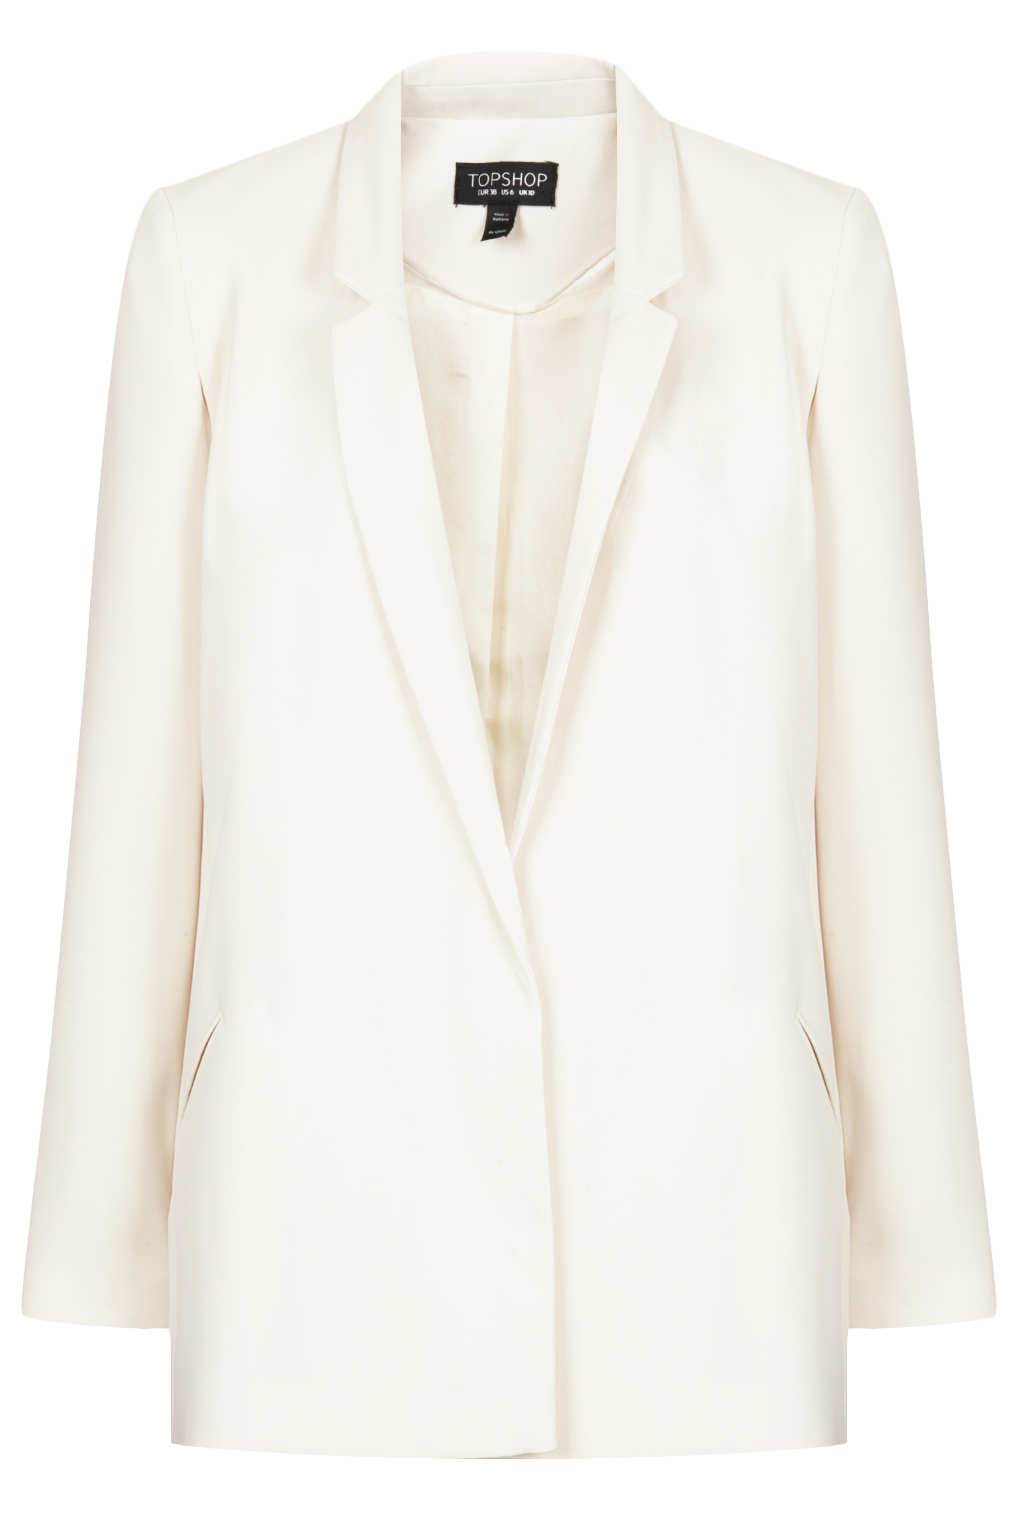 Lyst - Topshop Tailored Long Line Blazer in White